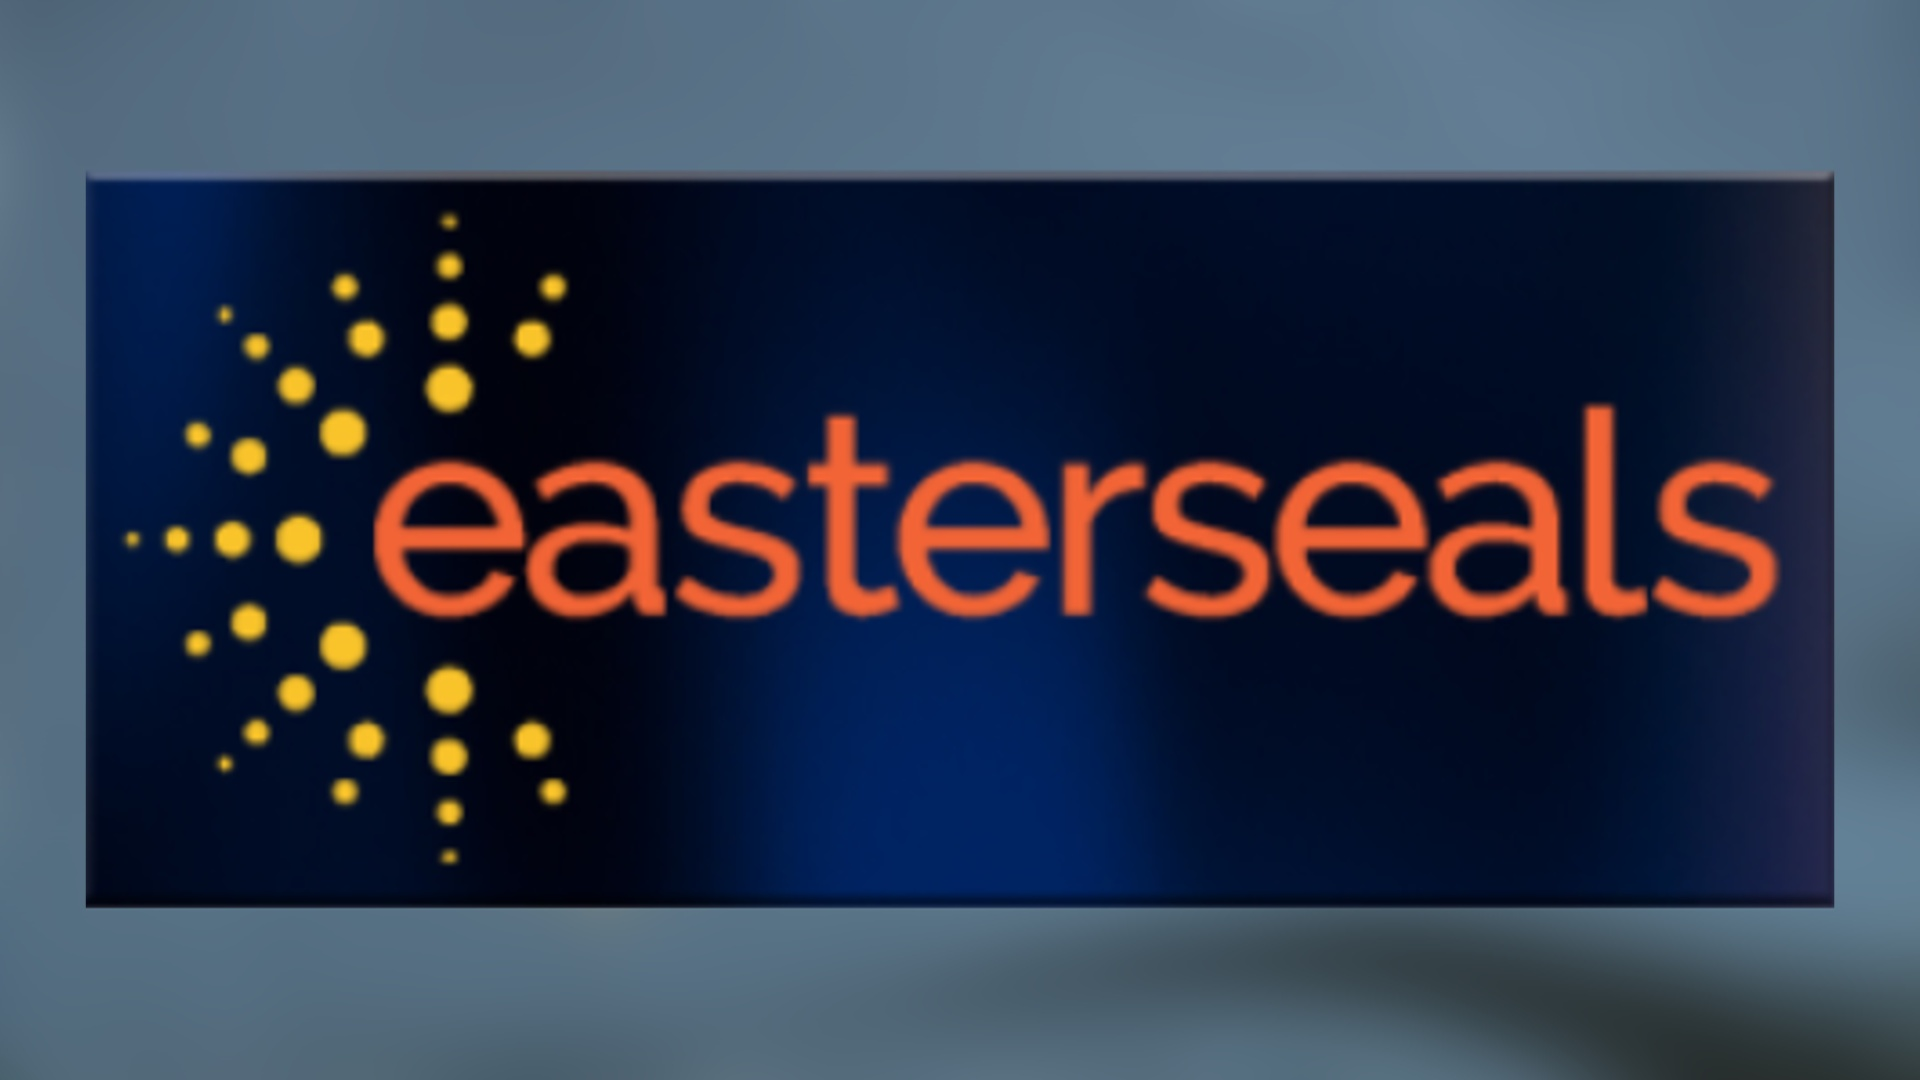 Easter seals new logo_1522789888441.jpg